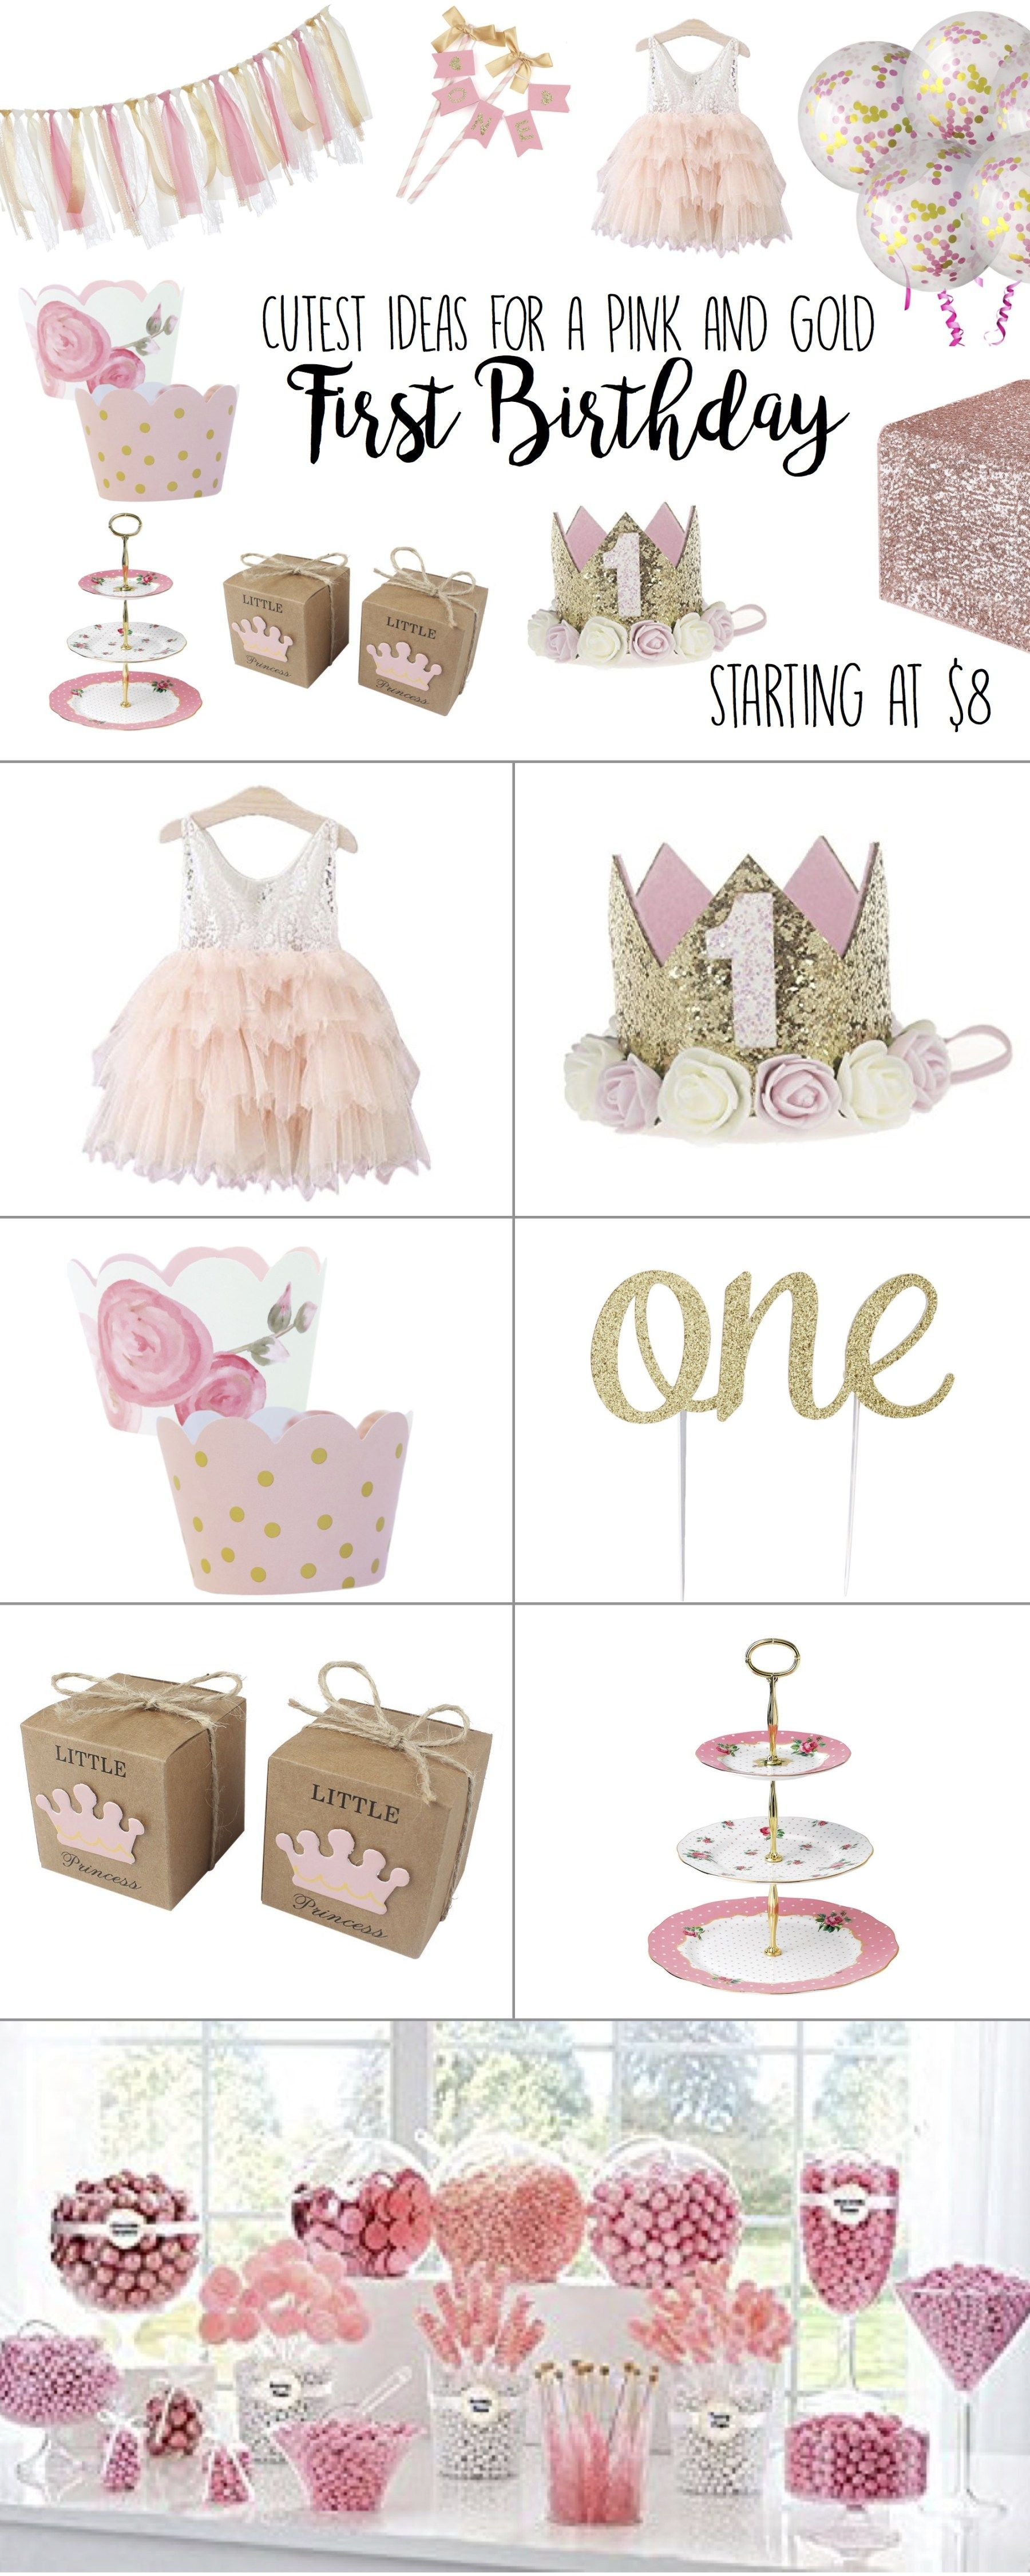 Pink and Gold First Birthday Party Theme Ideas 1st Birthday Girl